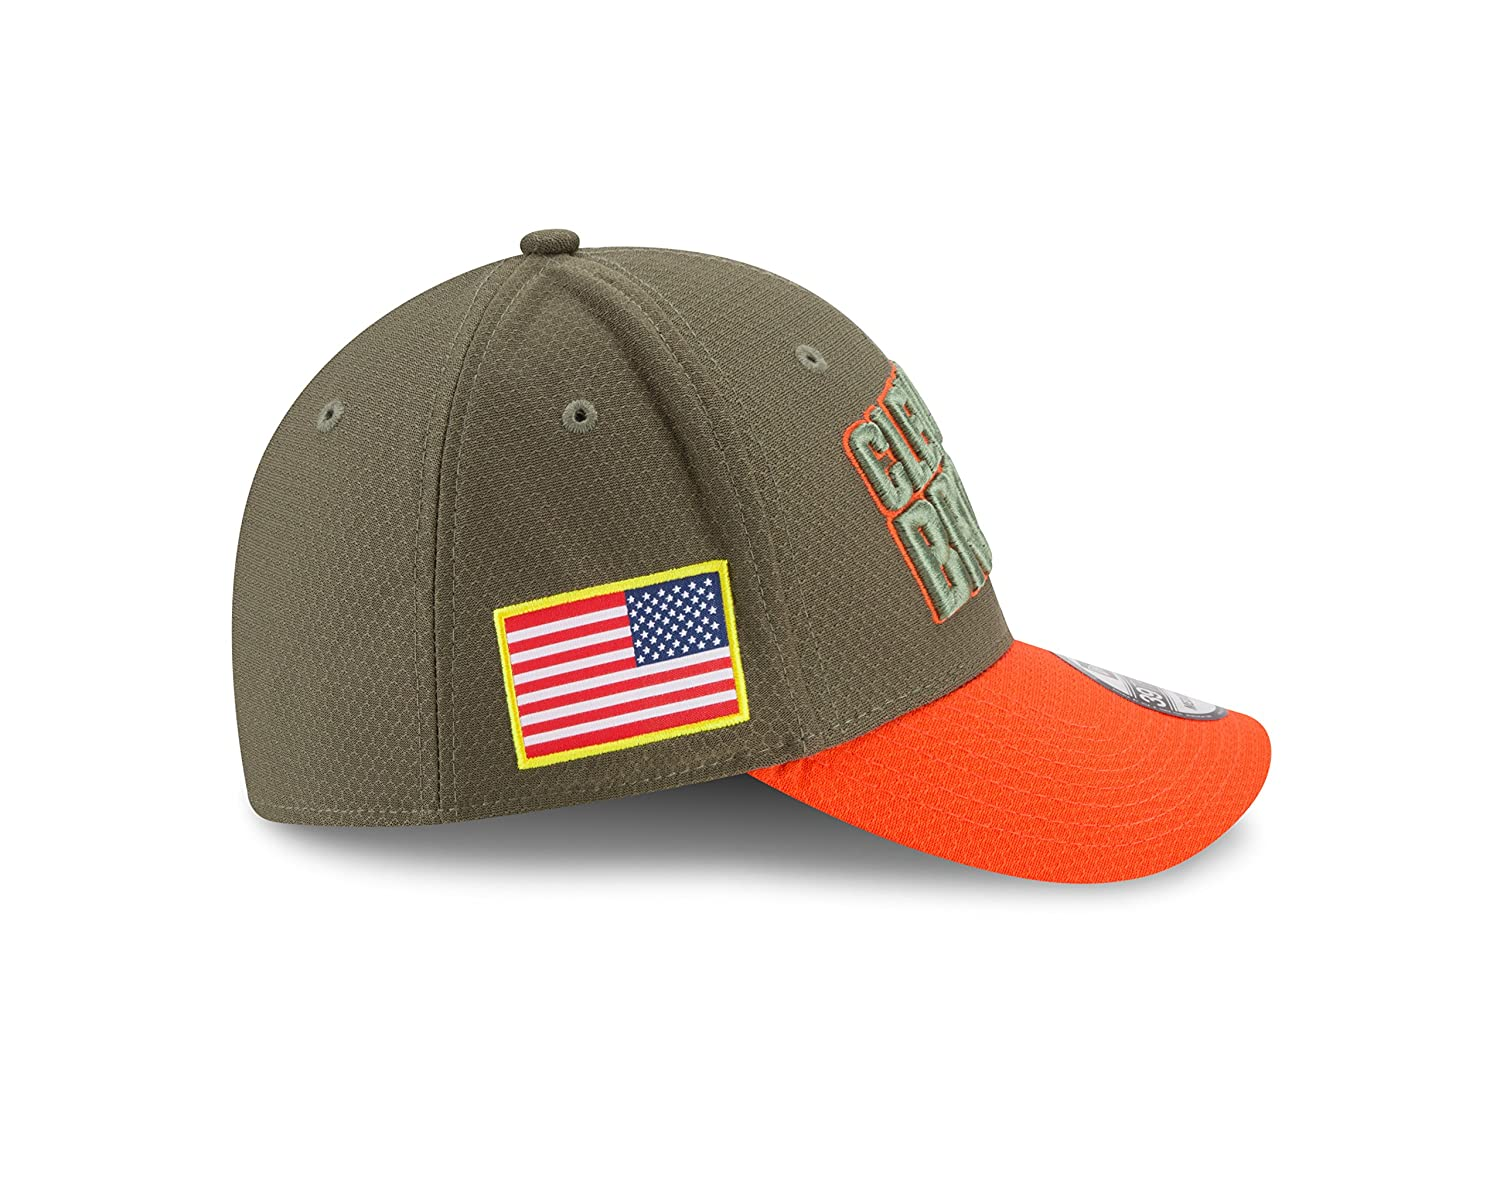 cf3e561673a Amazon.com   Cleveland Browns New Era 2017 Salute To Service 39THIRTY Flex  Hat - Olive   Sports   Outdoors